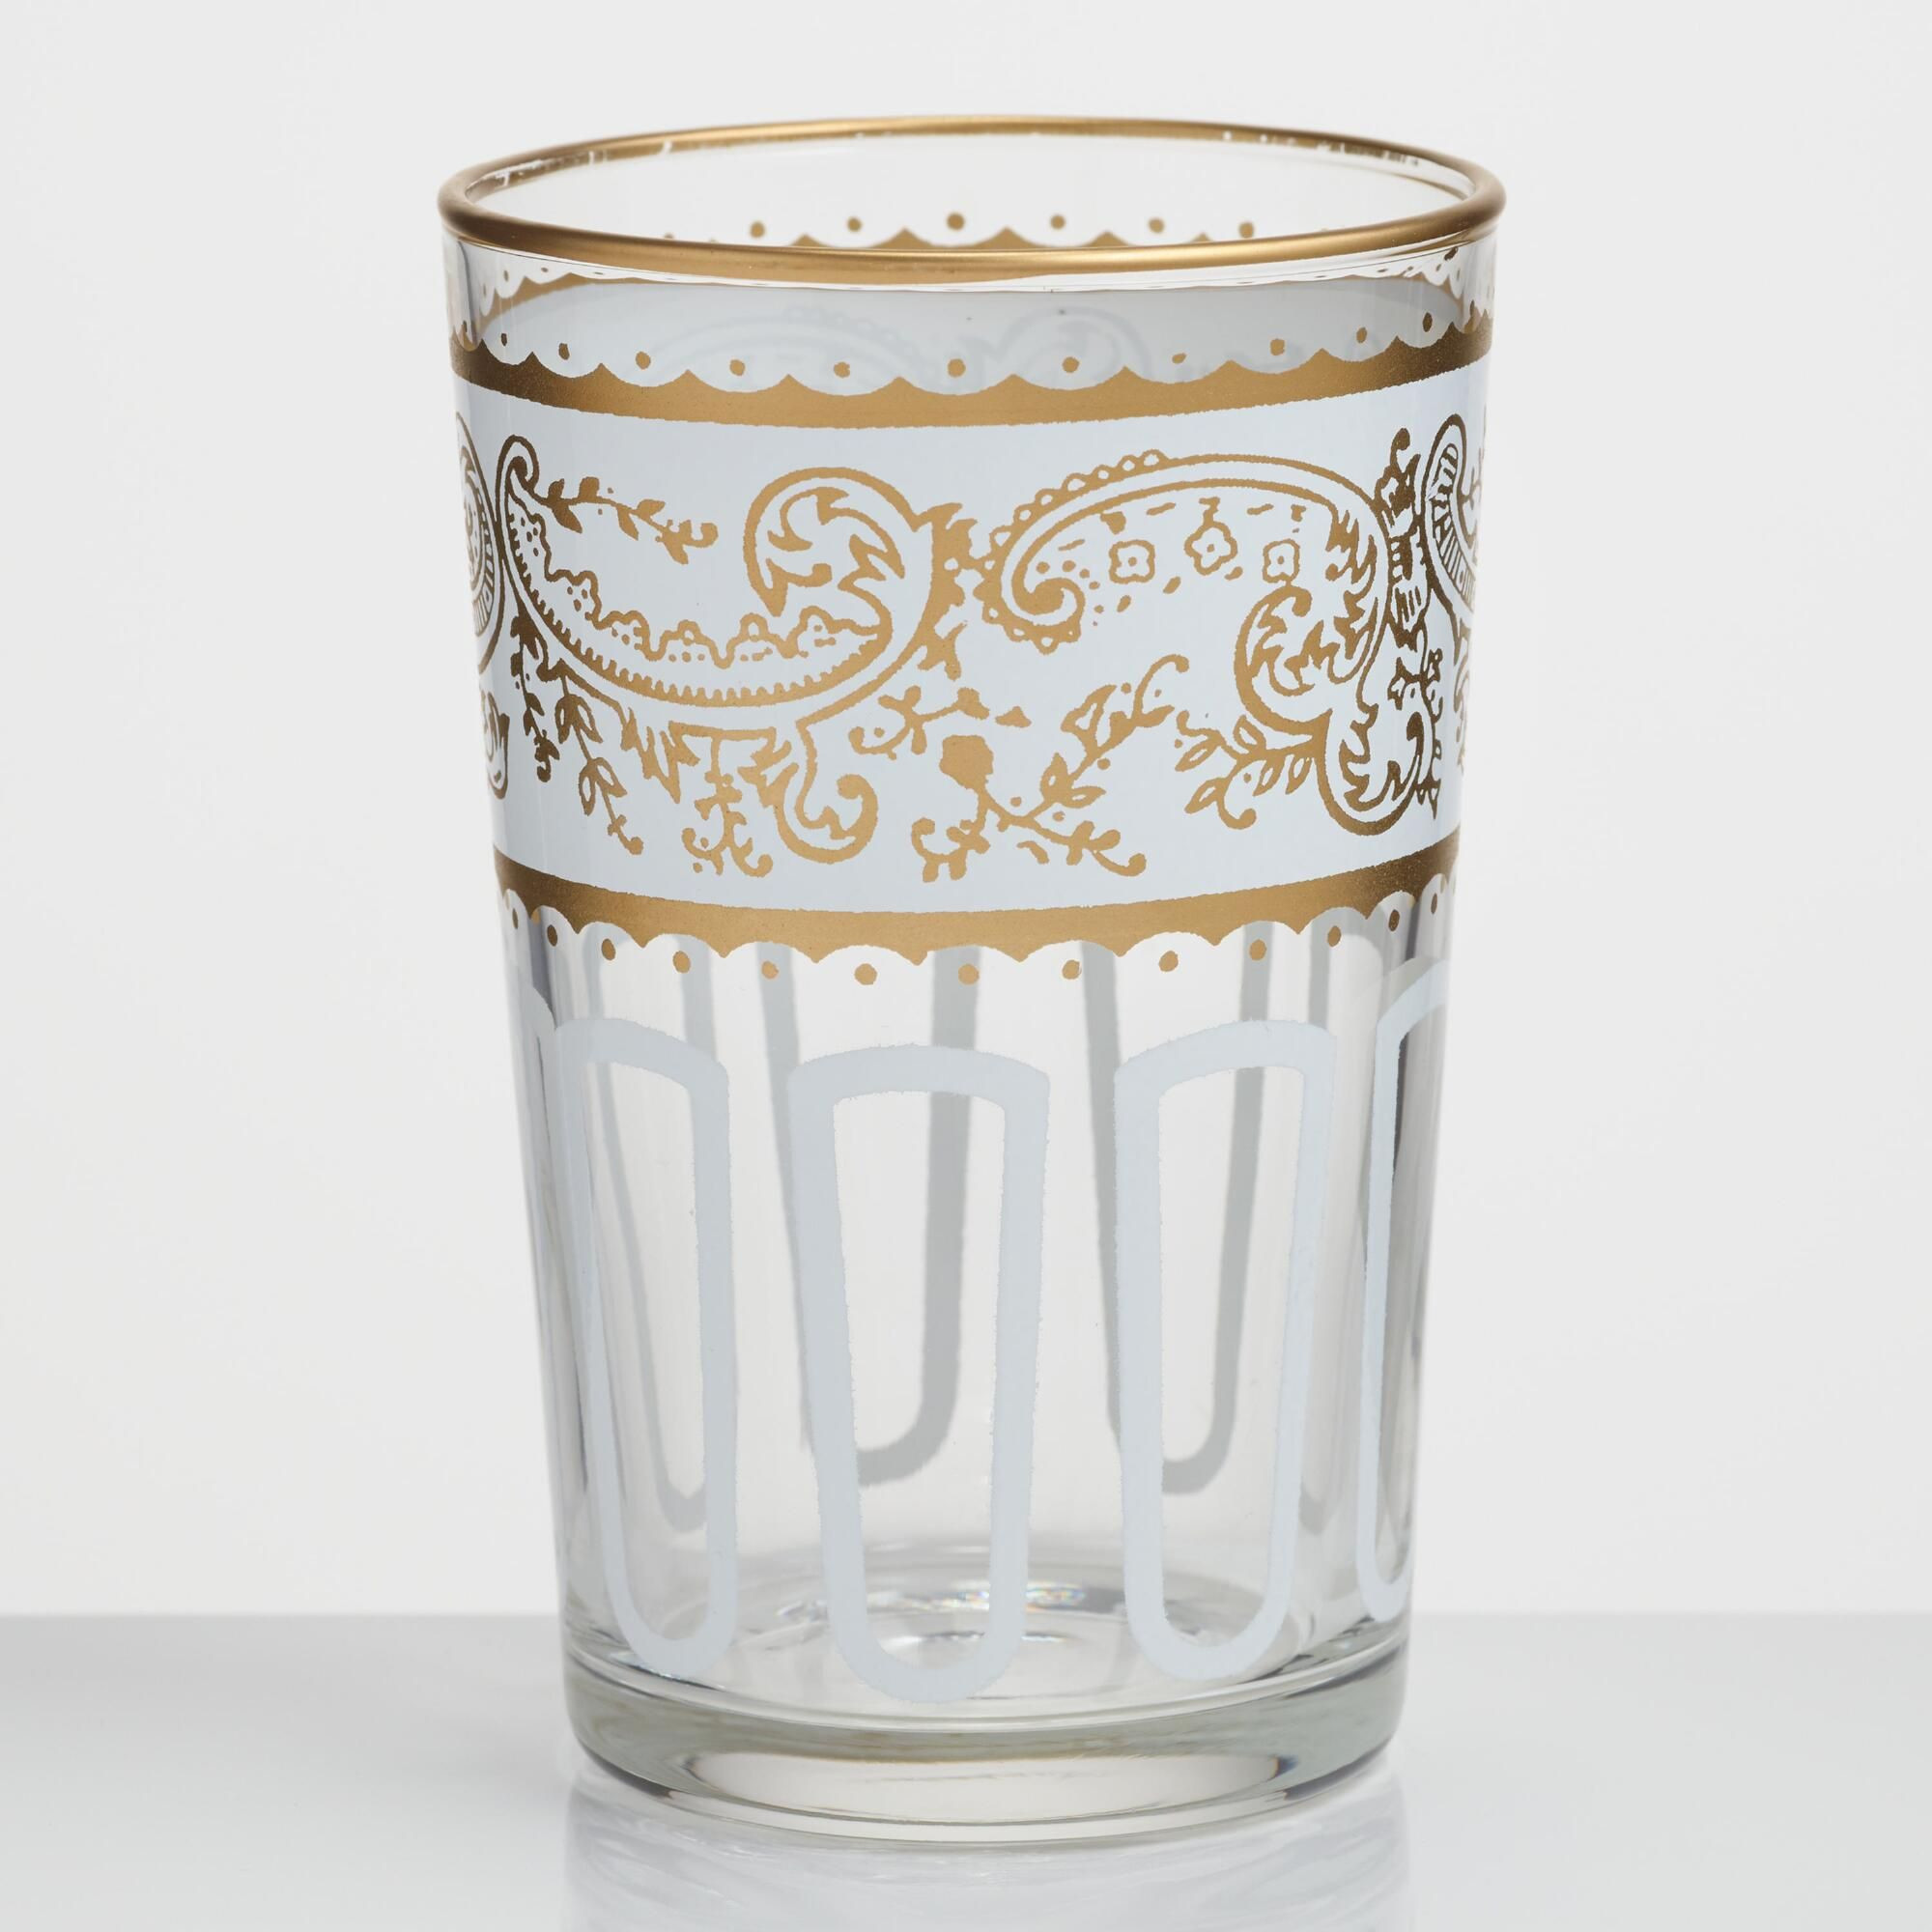 moroccan ceramic vase of our ornate moroccan tea glasses hail from north africa and feature a for our ornate moroccan tea glasses hail from north africa and feature a traditional design rendered in white although these glasses were originally designed